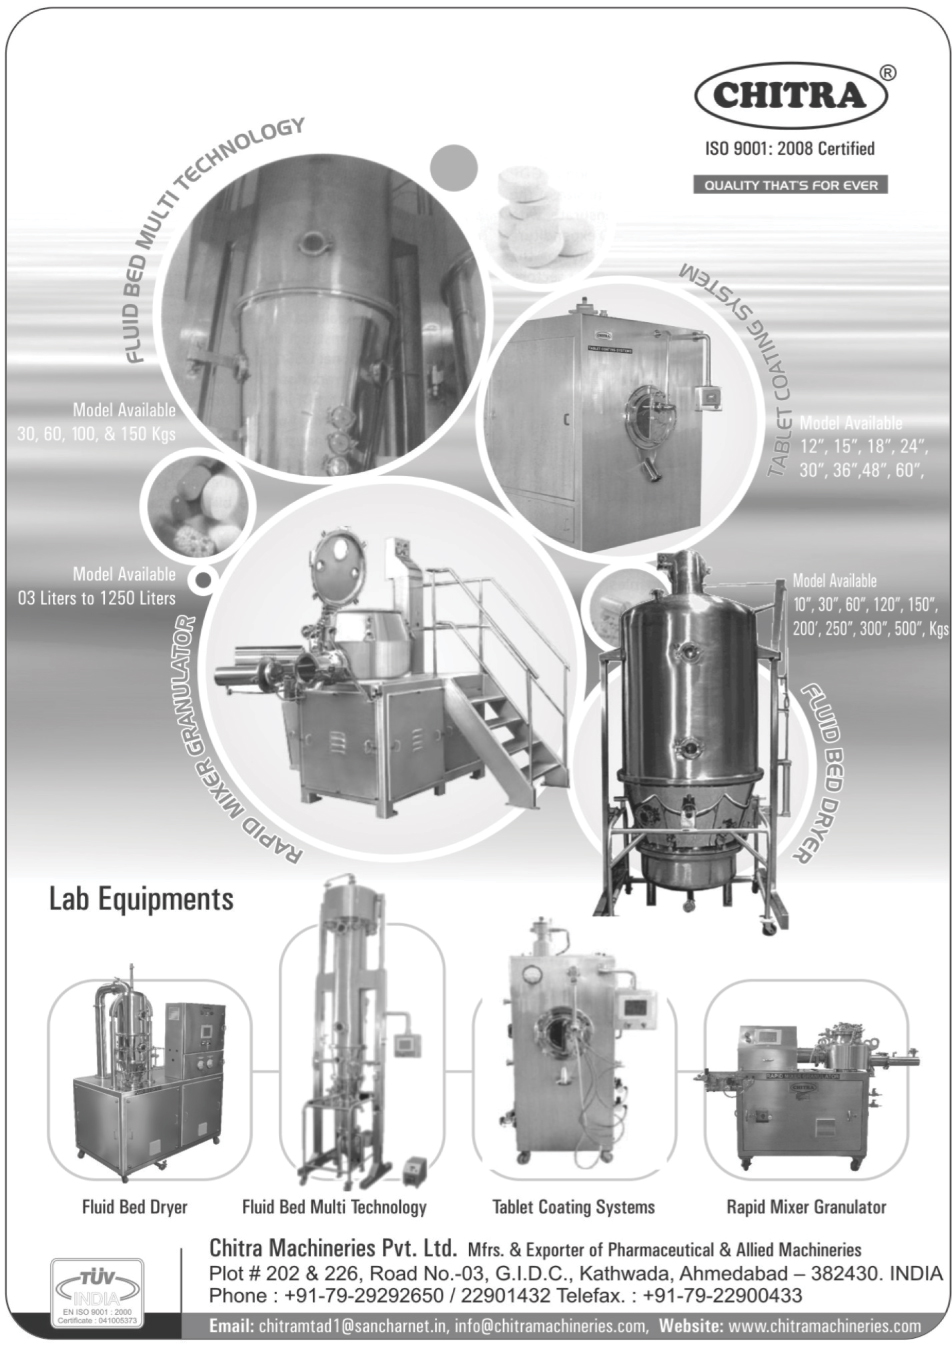 Laboratory Equipments, Fluid Bed Dryers, Fluid Bed Multi Technology, Tablet Coating Systems, Rapid Mixer Granulators,